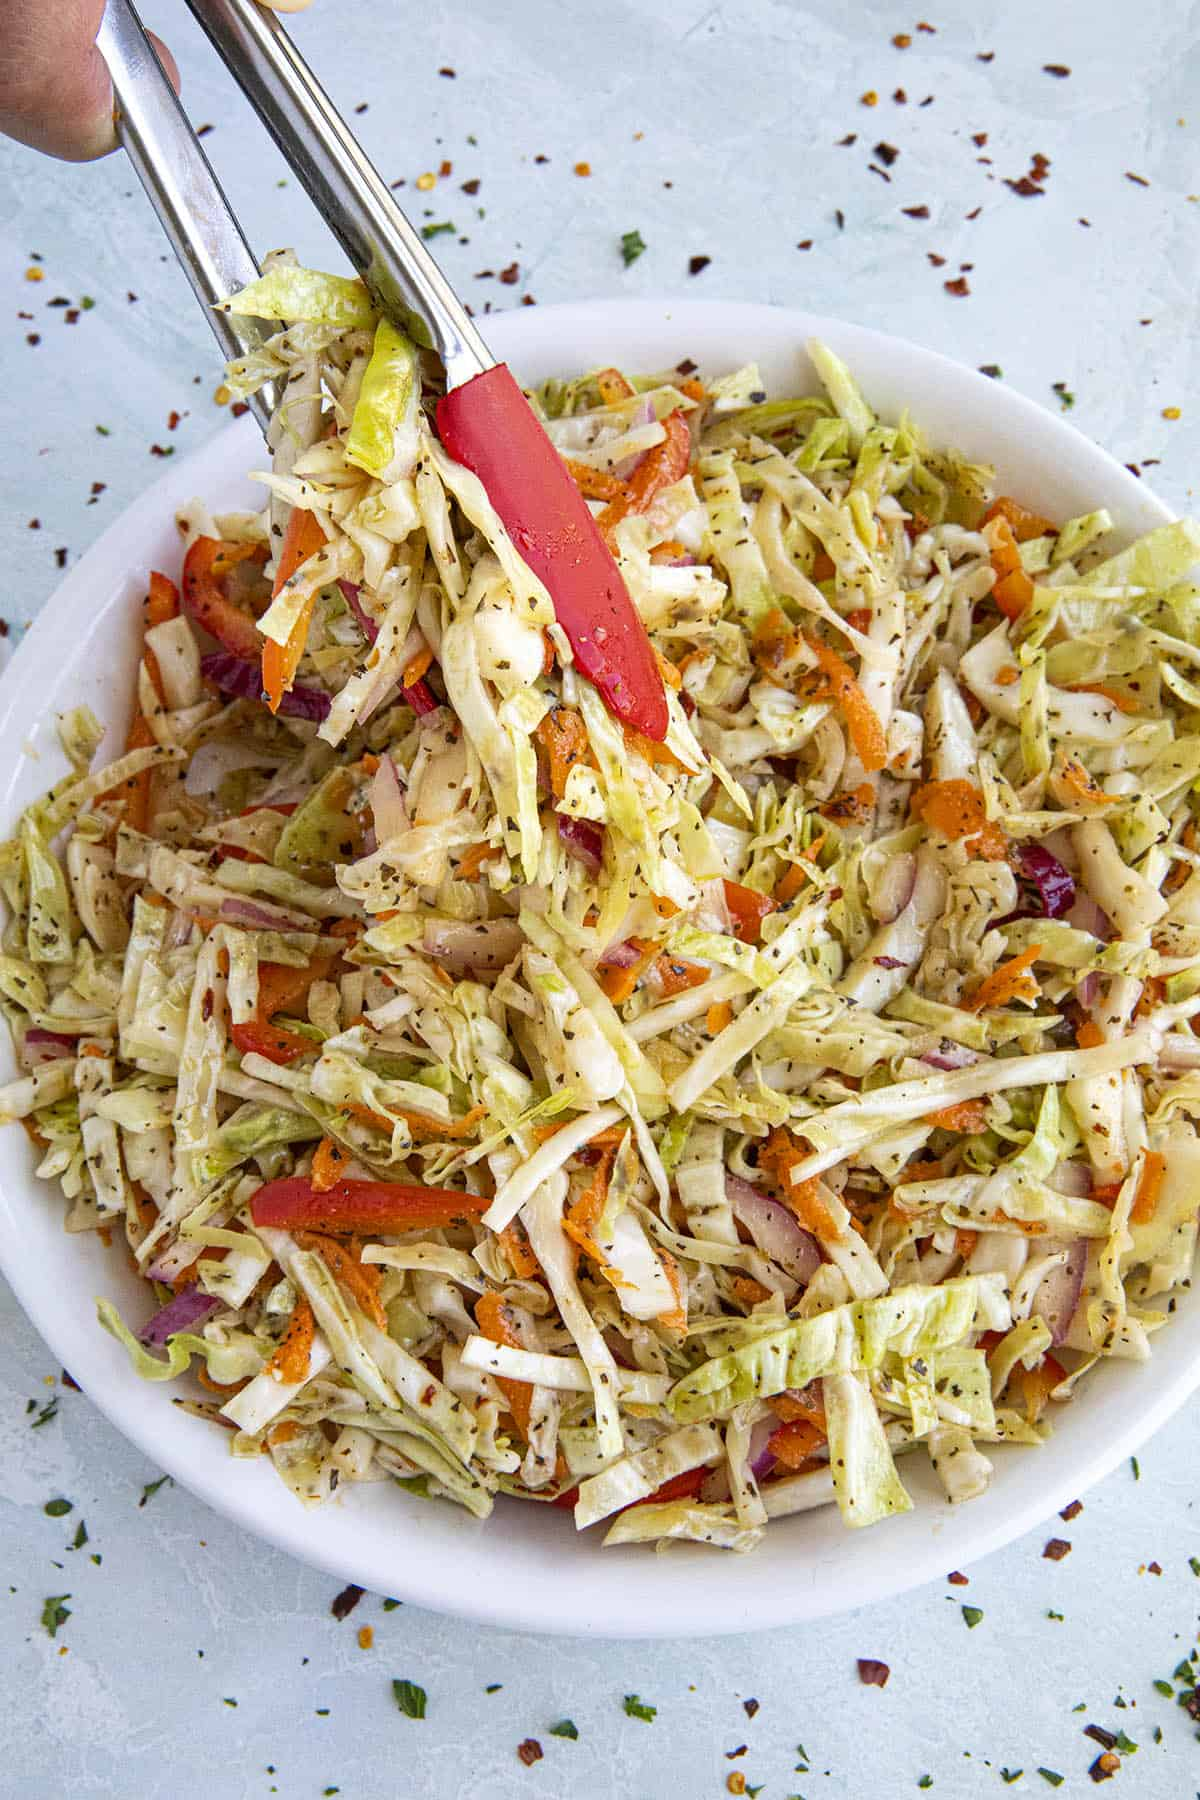 Mike scooping up Vinegar Coleslaw with tongs